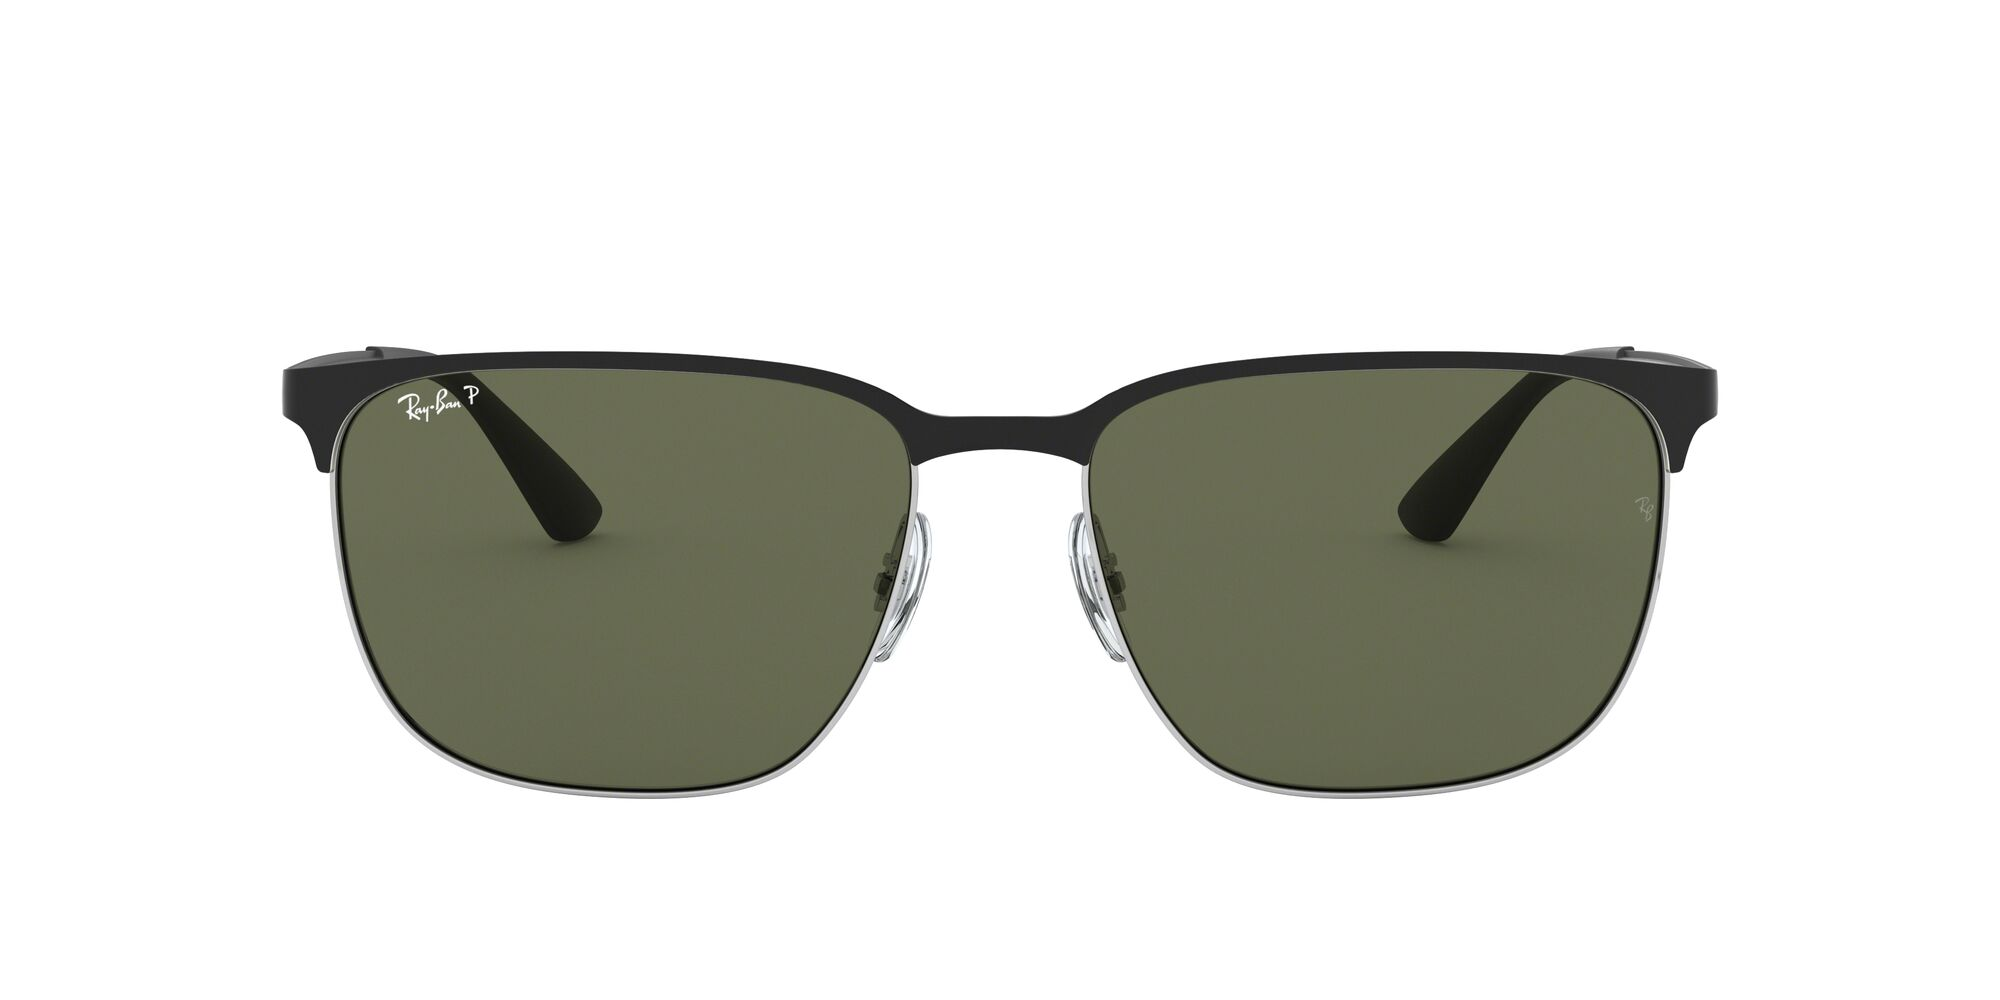 Front Ray-Ban Ray-Ban 0RB3569 90049A 59/17 Zilver/Groen